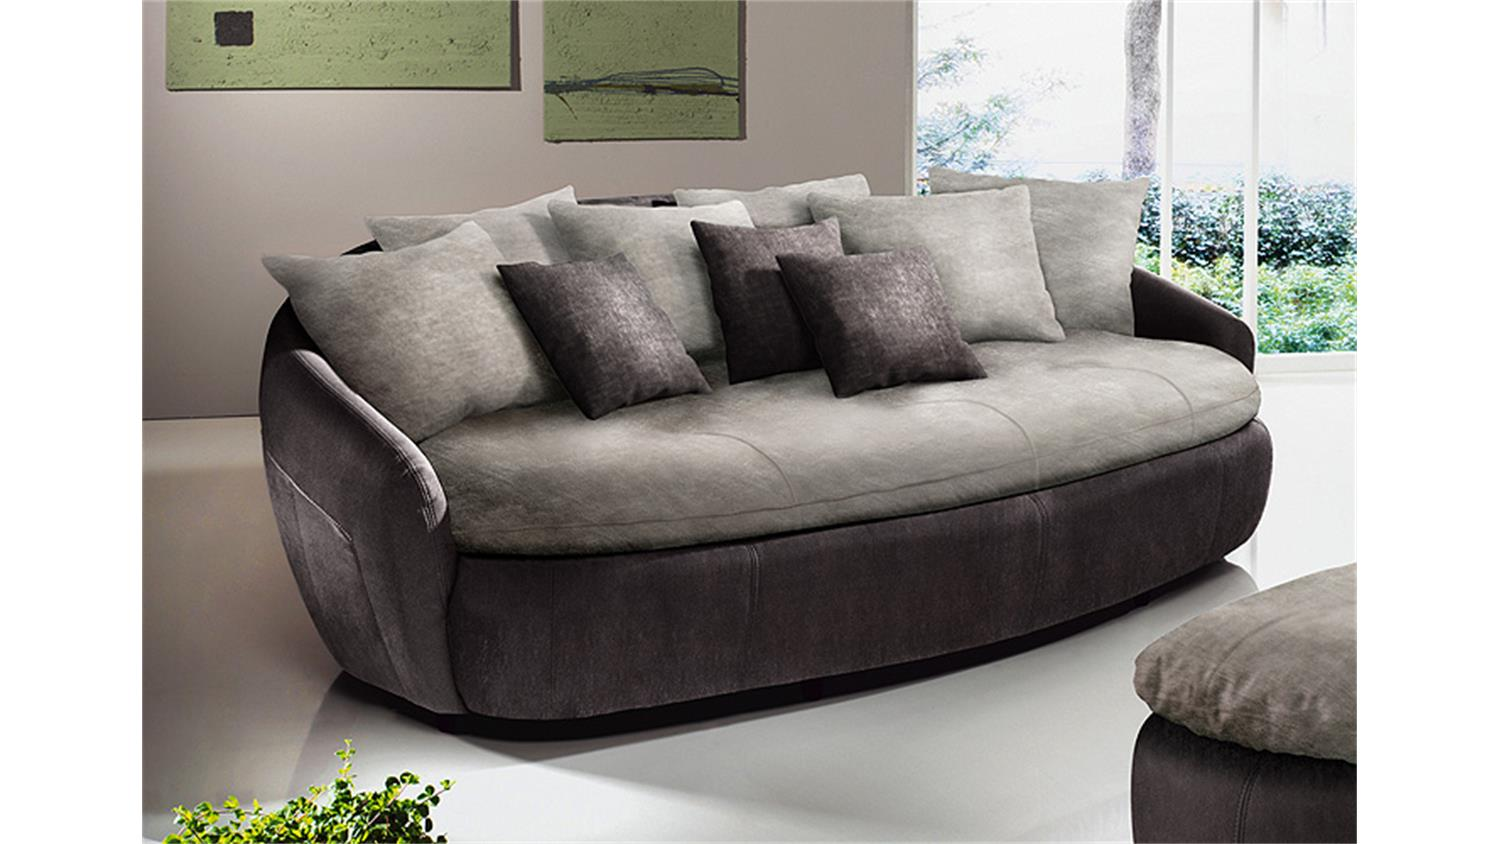 megasofa crasus 2 sofa in mud braun und elephant grau. Black Bedroom Furniture Sets. Home Design Ideas